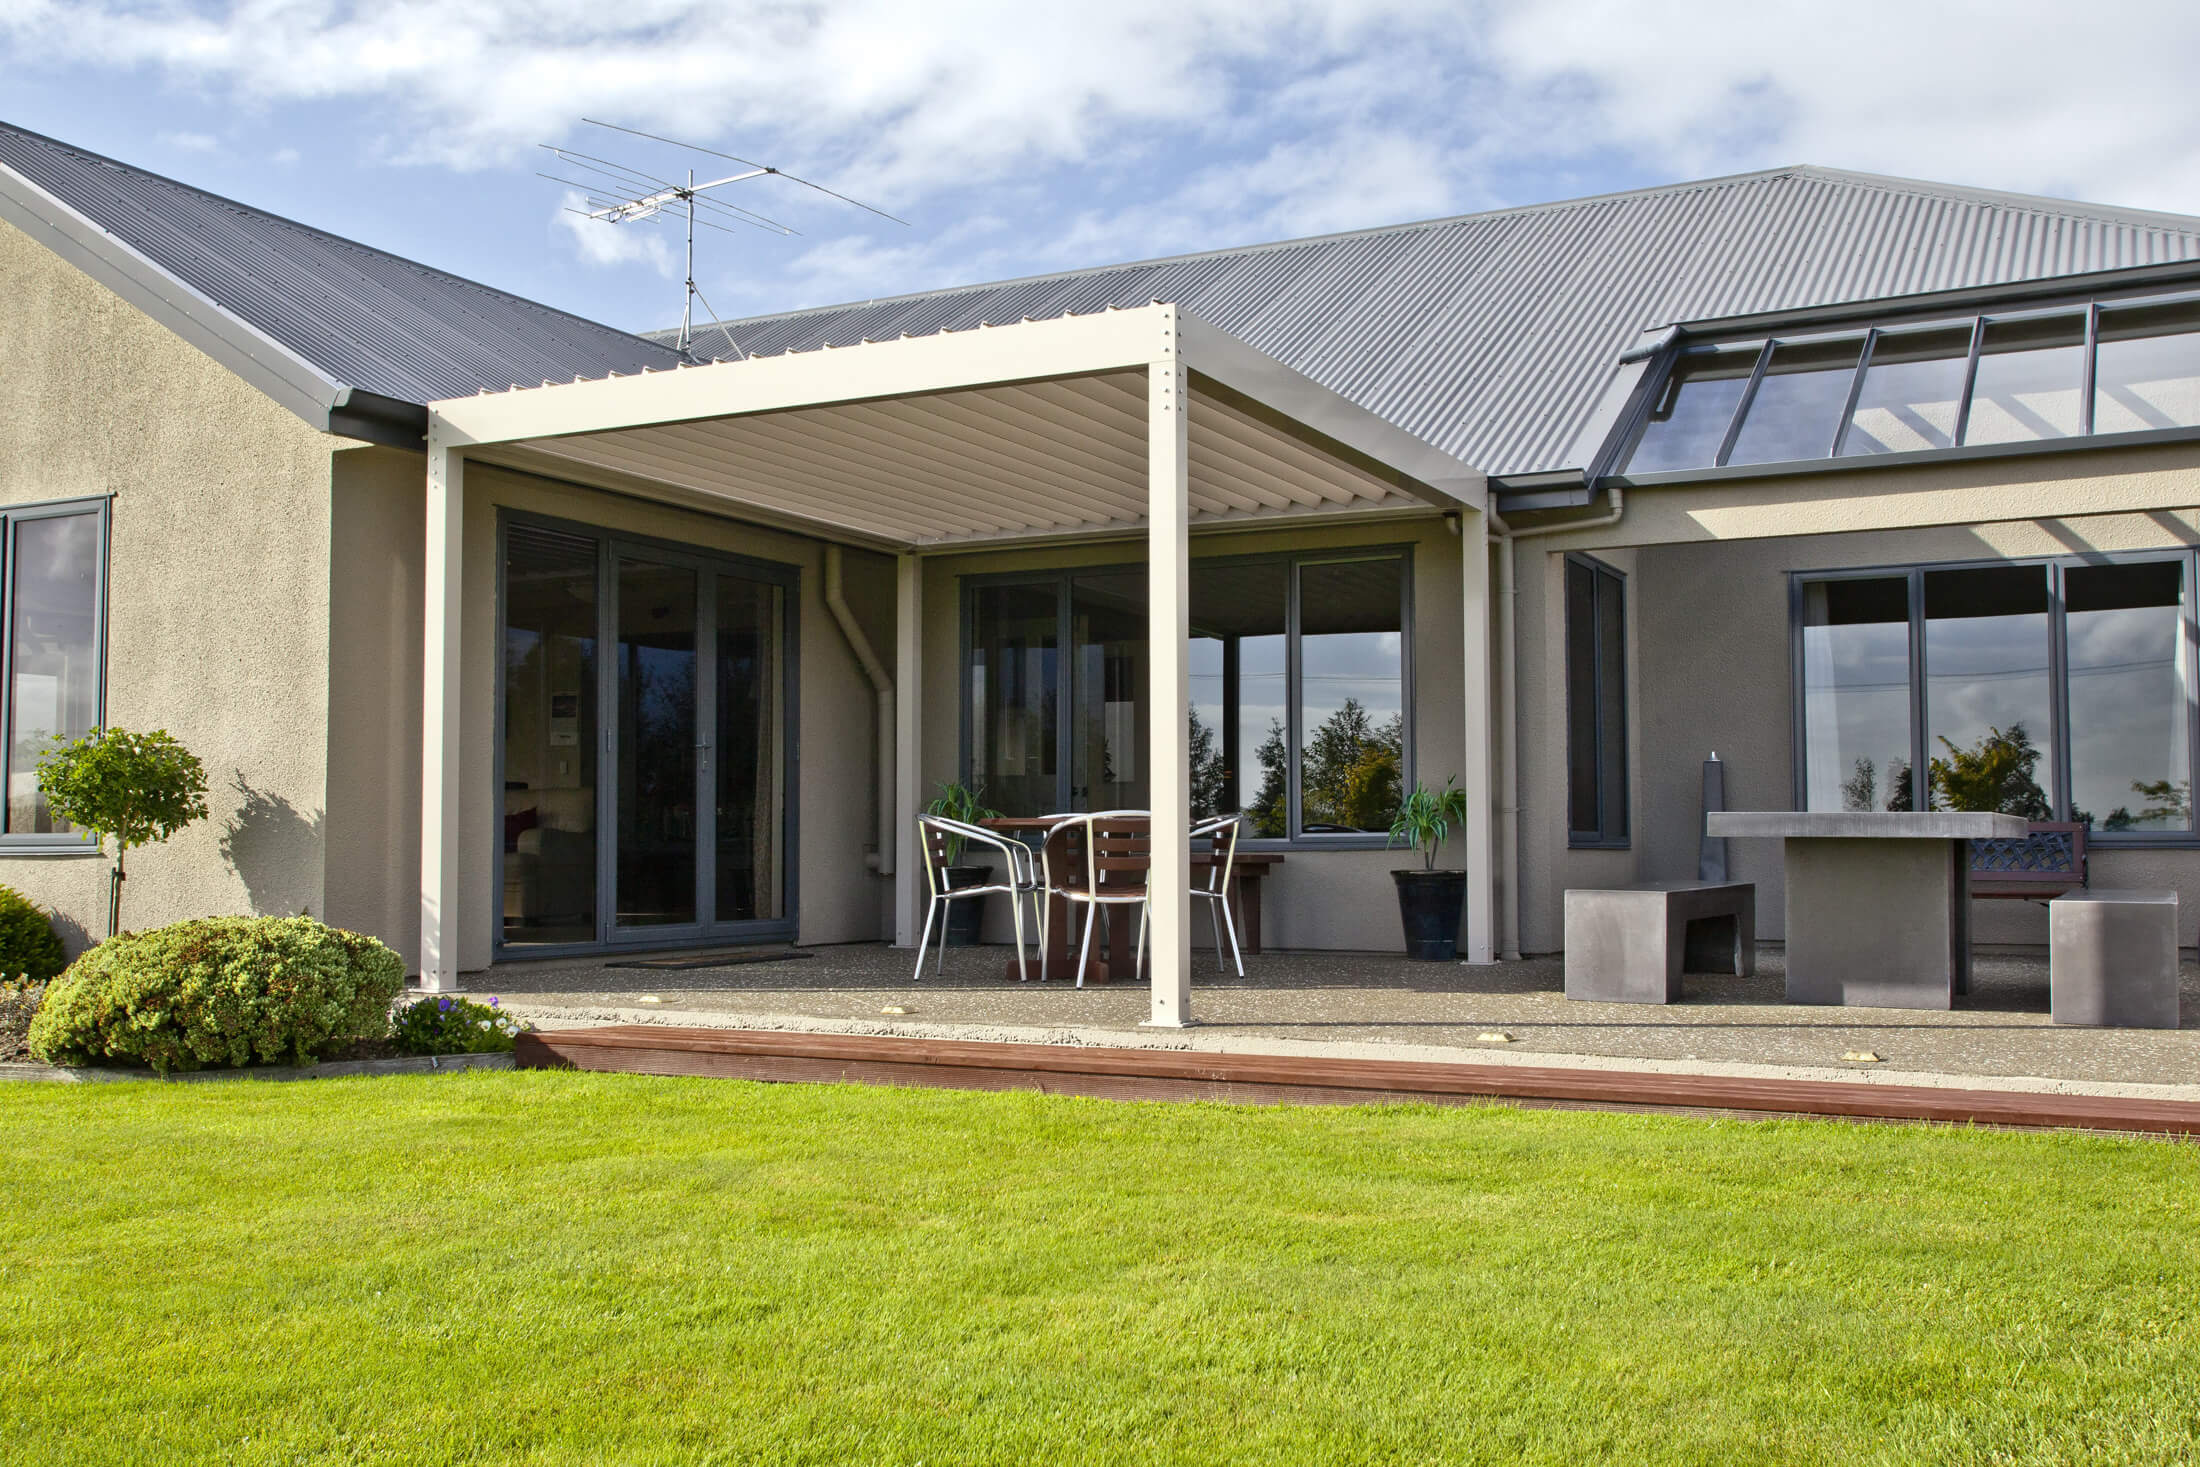 Free-standing aluminium frame with opening louvre roof